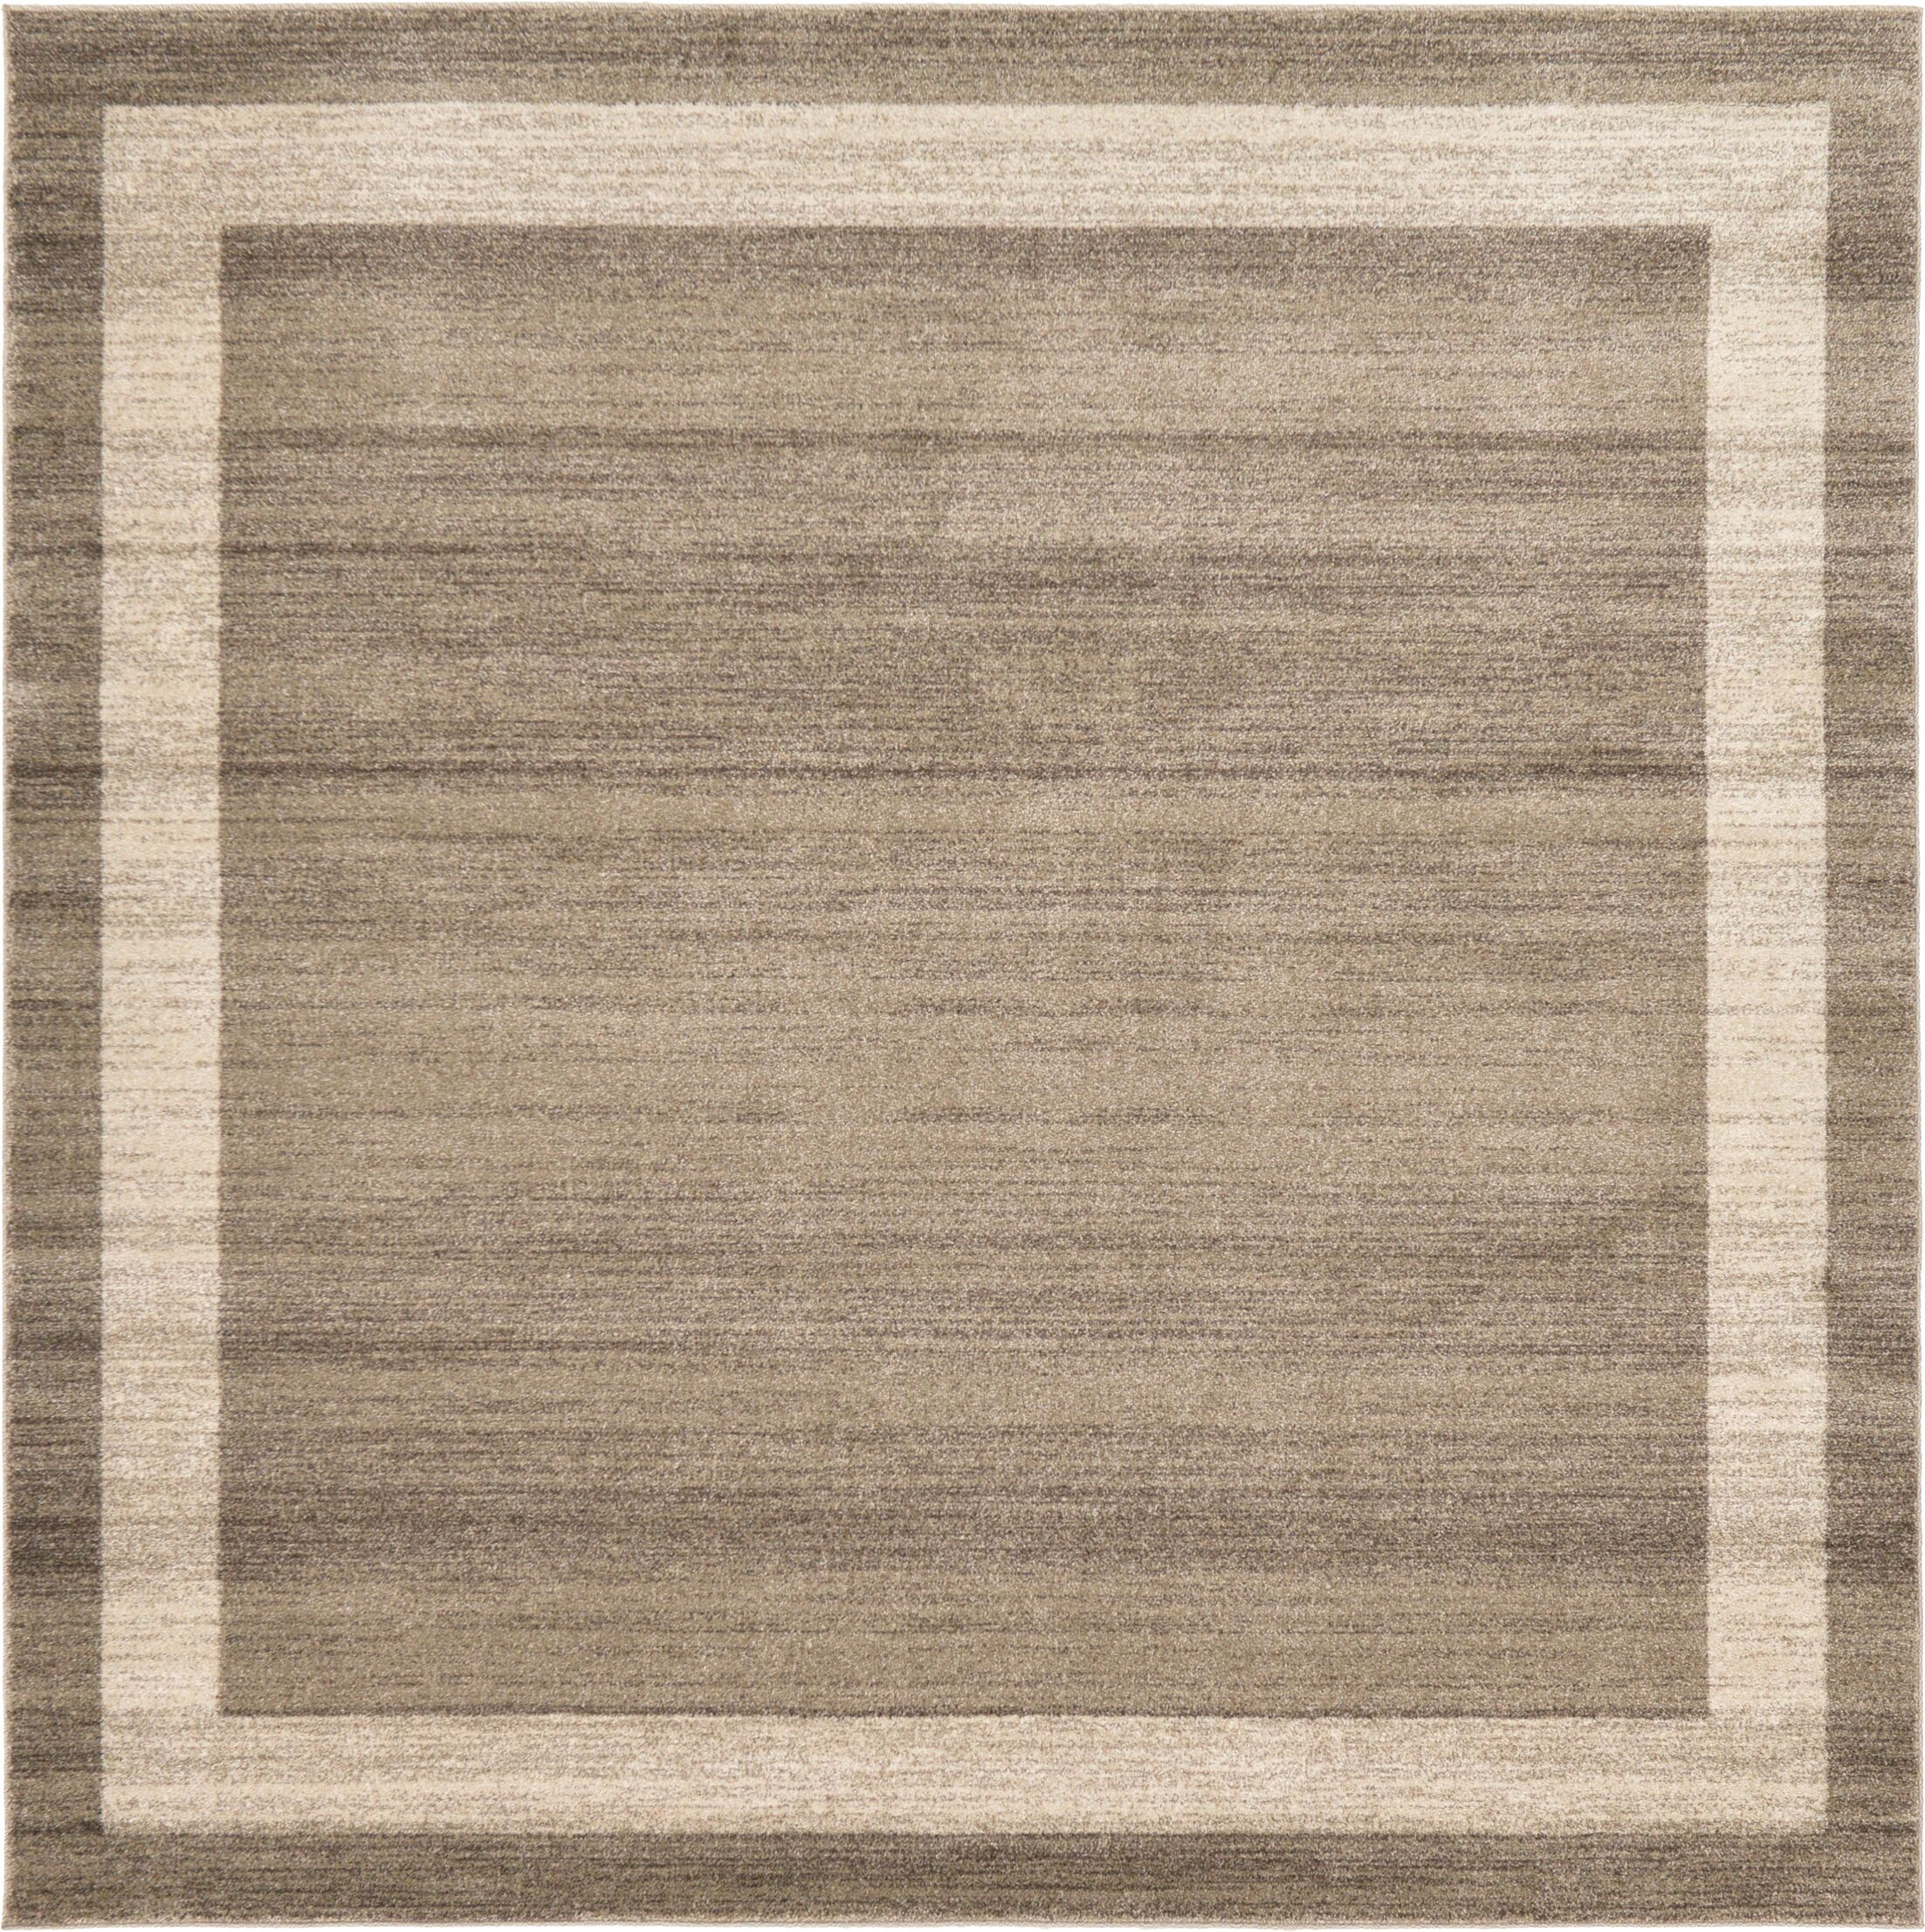 Christi Brown/Beige Area Rug Rug Size: Square 8'